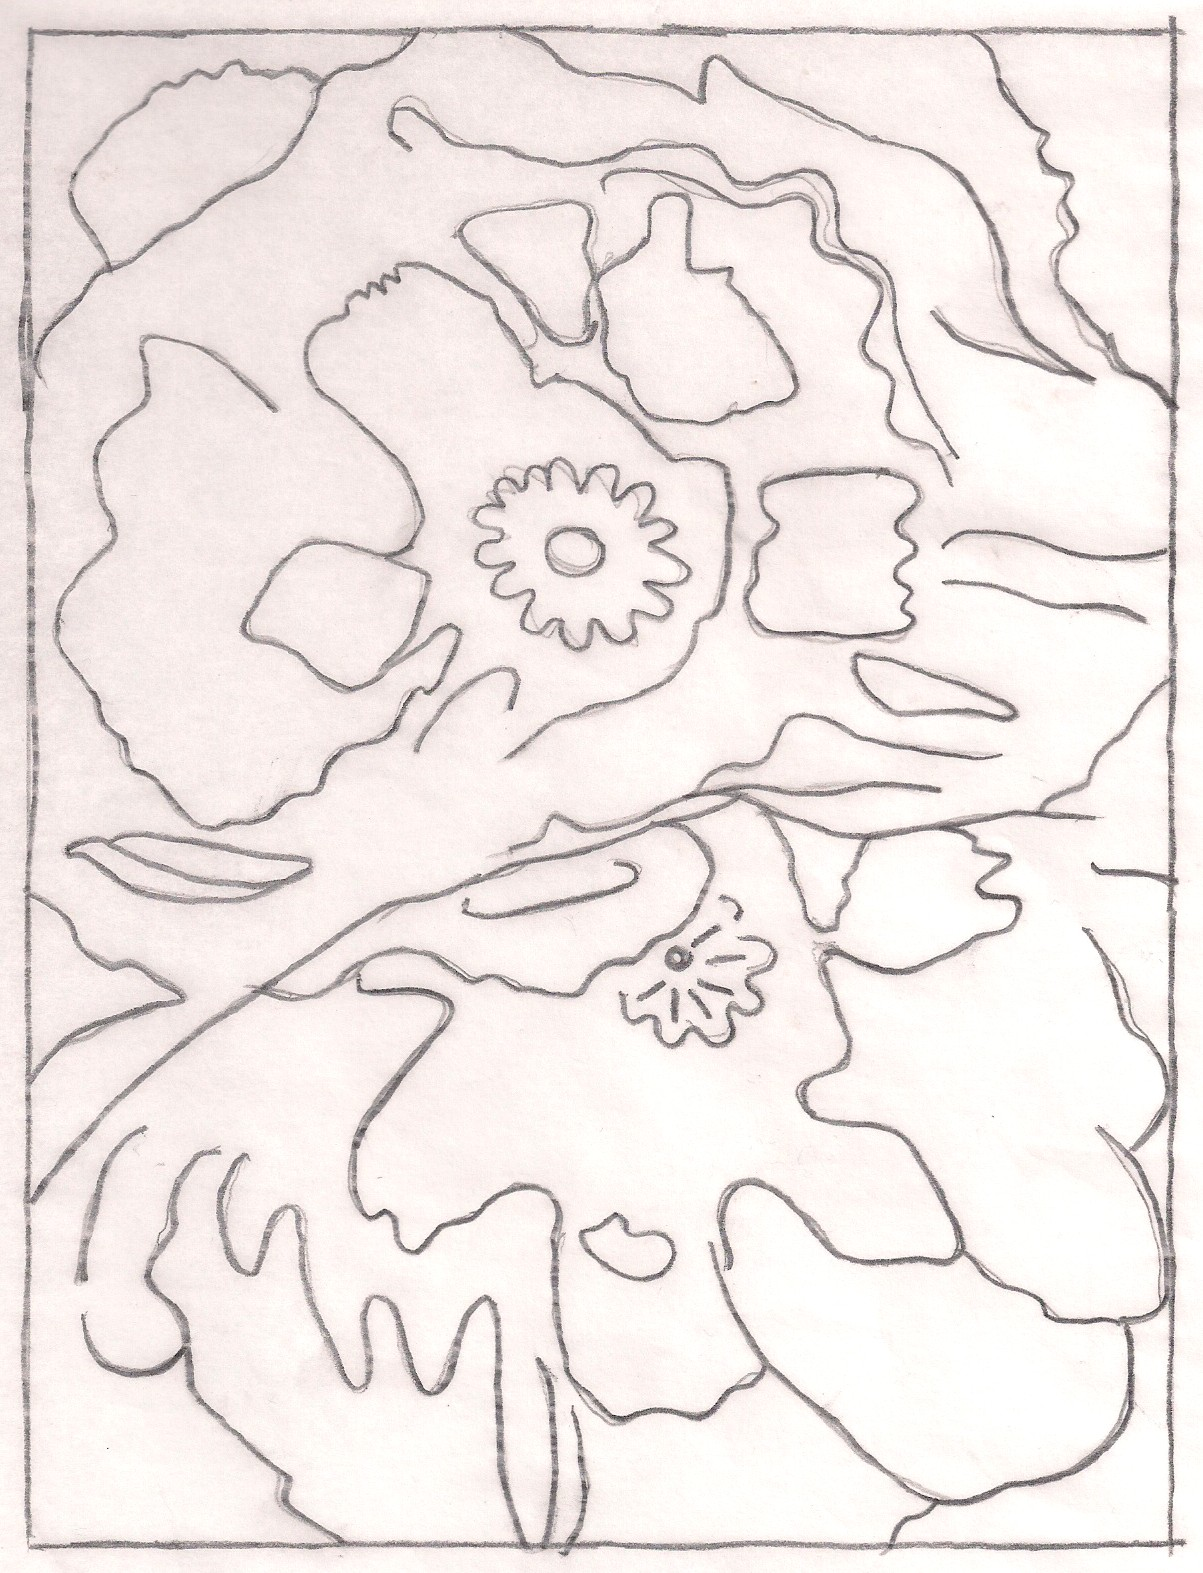 Free Coloring Pages: Georgia O Keeffe Coloring Pages